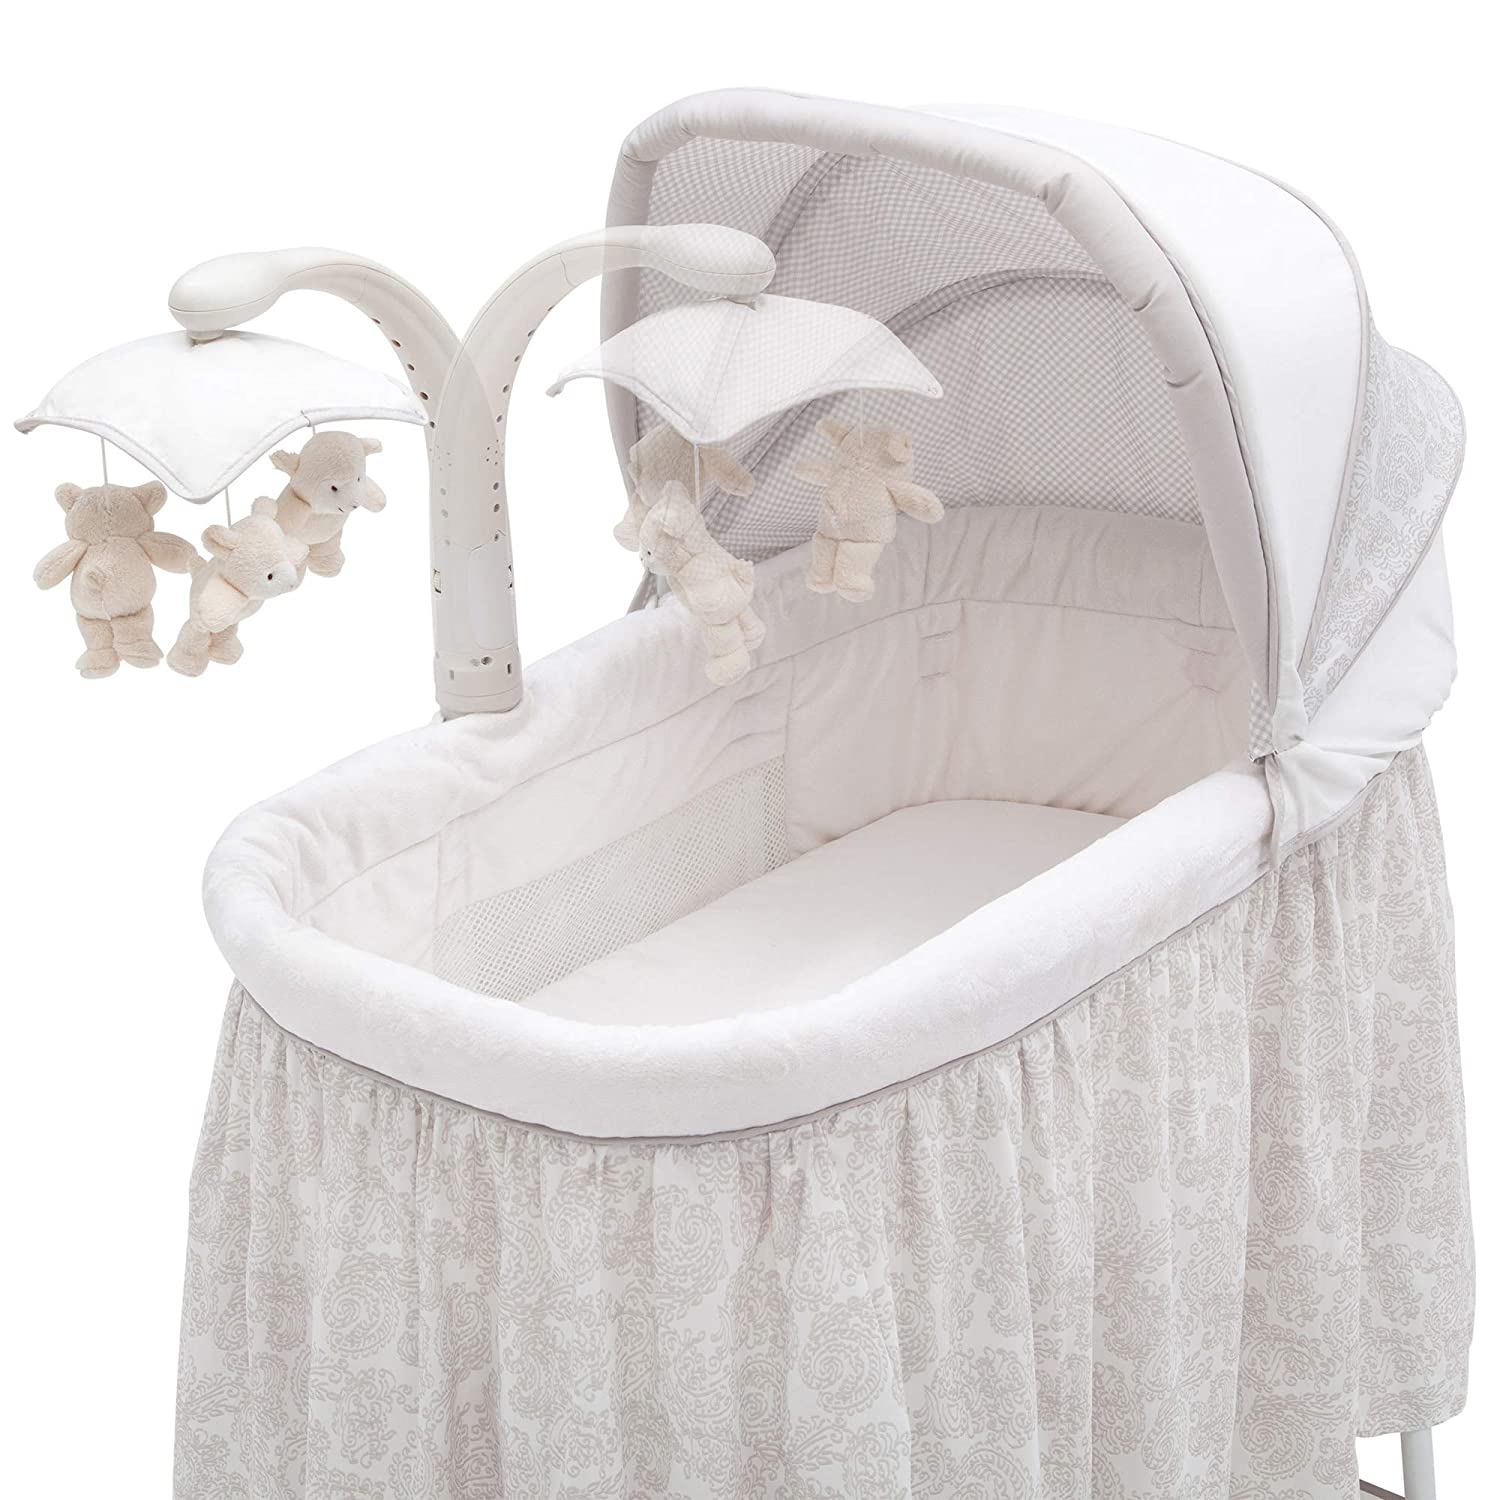 Ivory with Taupe Delta Enterprise Corp PLA 701305-2282 Simmons Kids Silent Auto Gliding Deluxe Bassinet Embossed Paisley